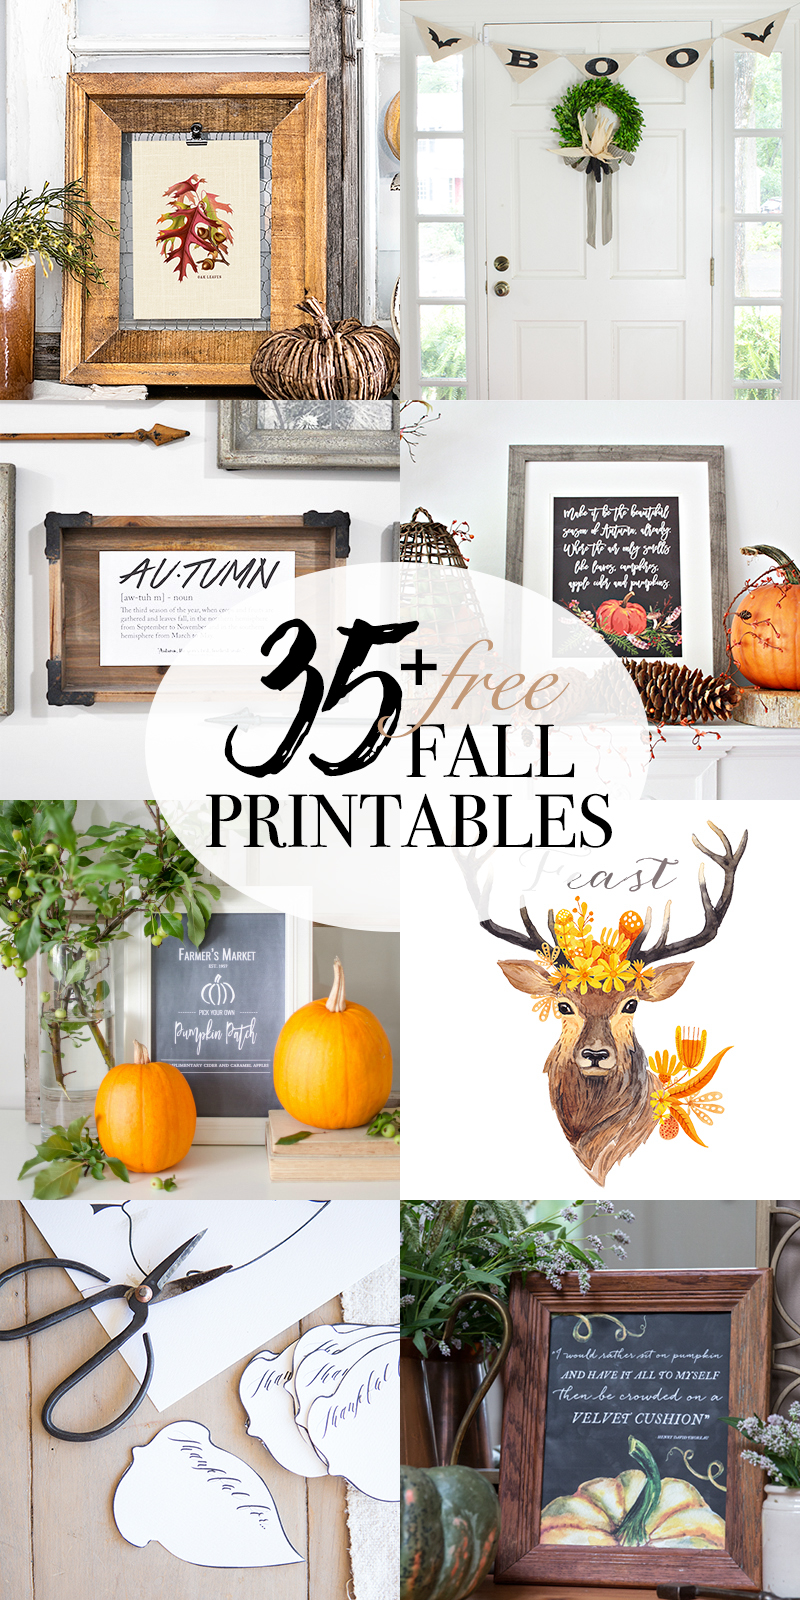 This rustic fall chalkboard printable will inspire thoughts of pumpkins, apple cider and hayrides. Download it for free at www.aburstofbeautiful.com